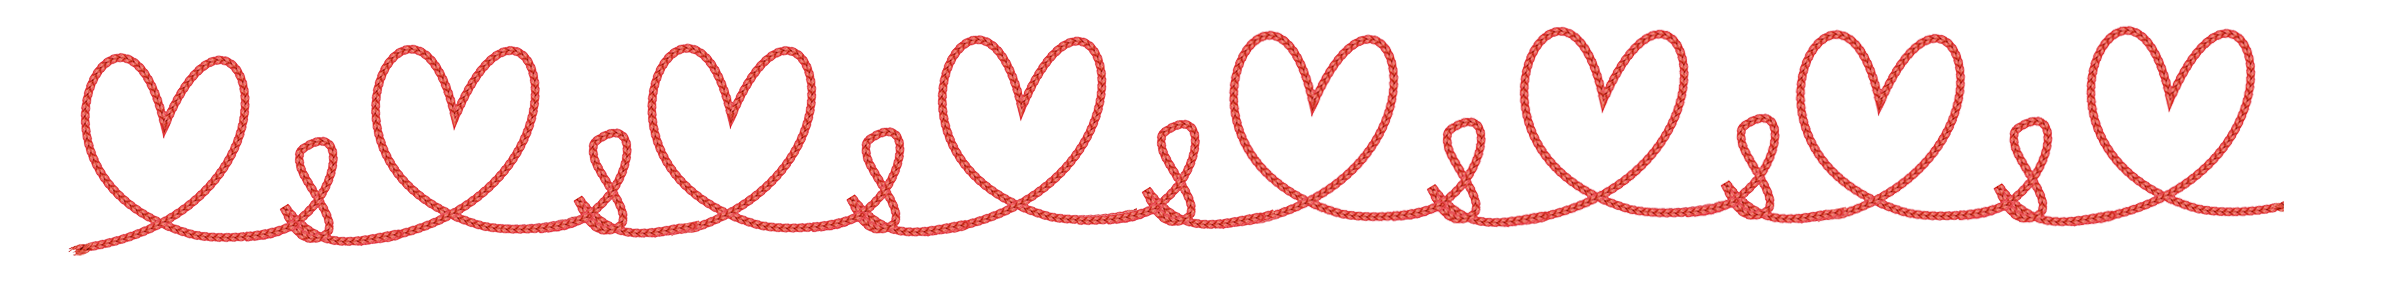 heart border made of rope